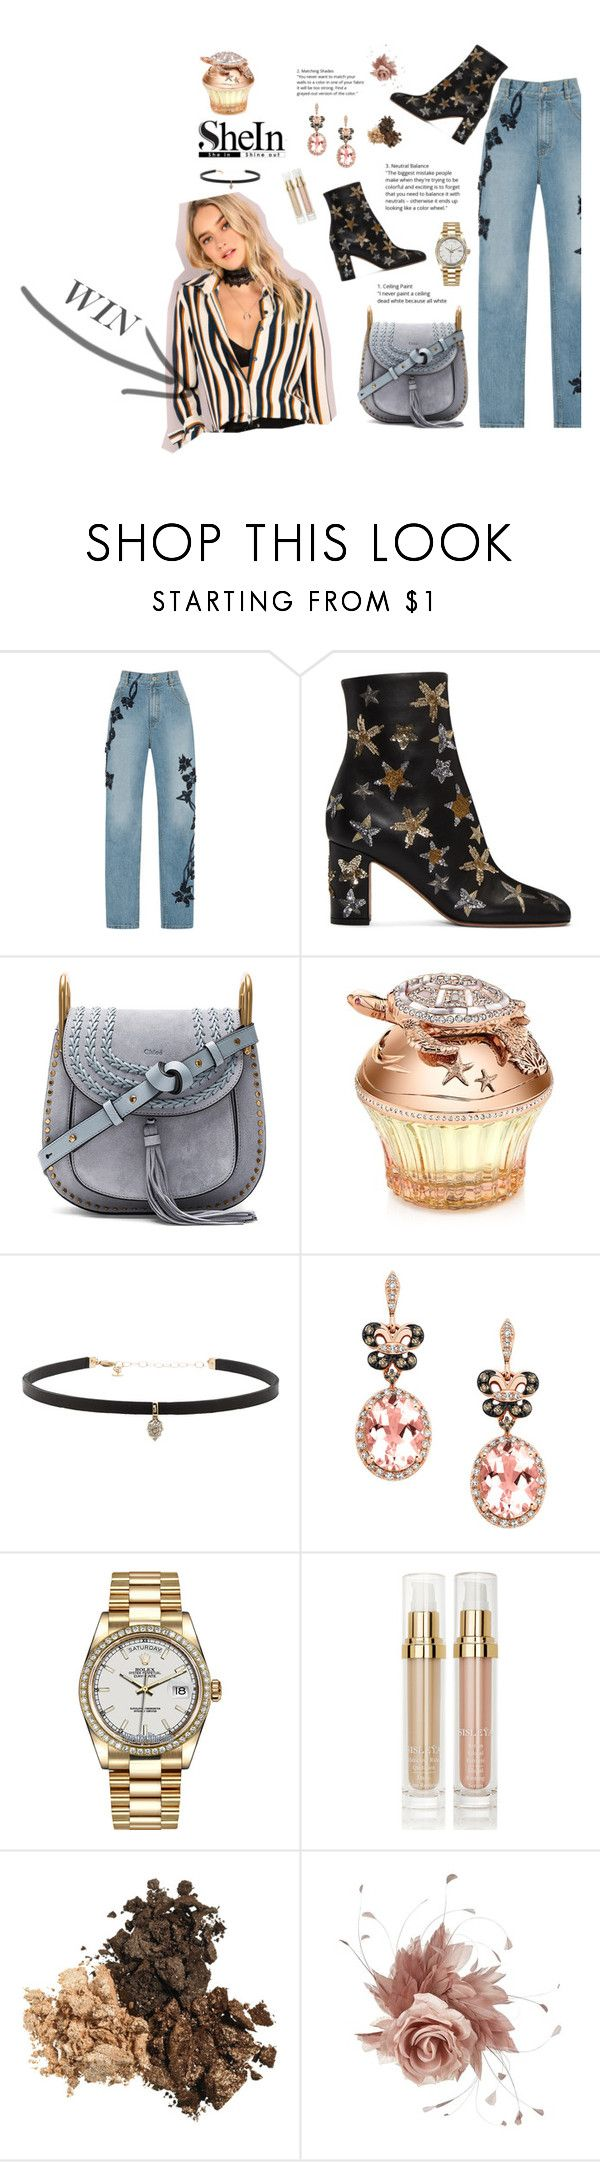 """Winter Princess"" by velvet-rat ❤ liked on Polyvore featuring Jonathan Simkhai, Valentino, Chloé, House of Sillage, Carbon & Hyde, Effy Jewelry, Rolex, Sisley, NERIDA FRAIMAN and Boots"